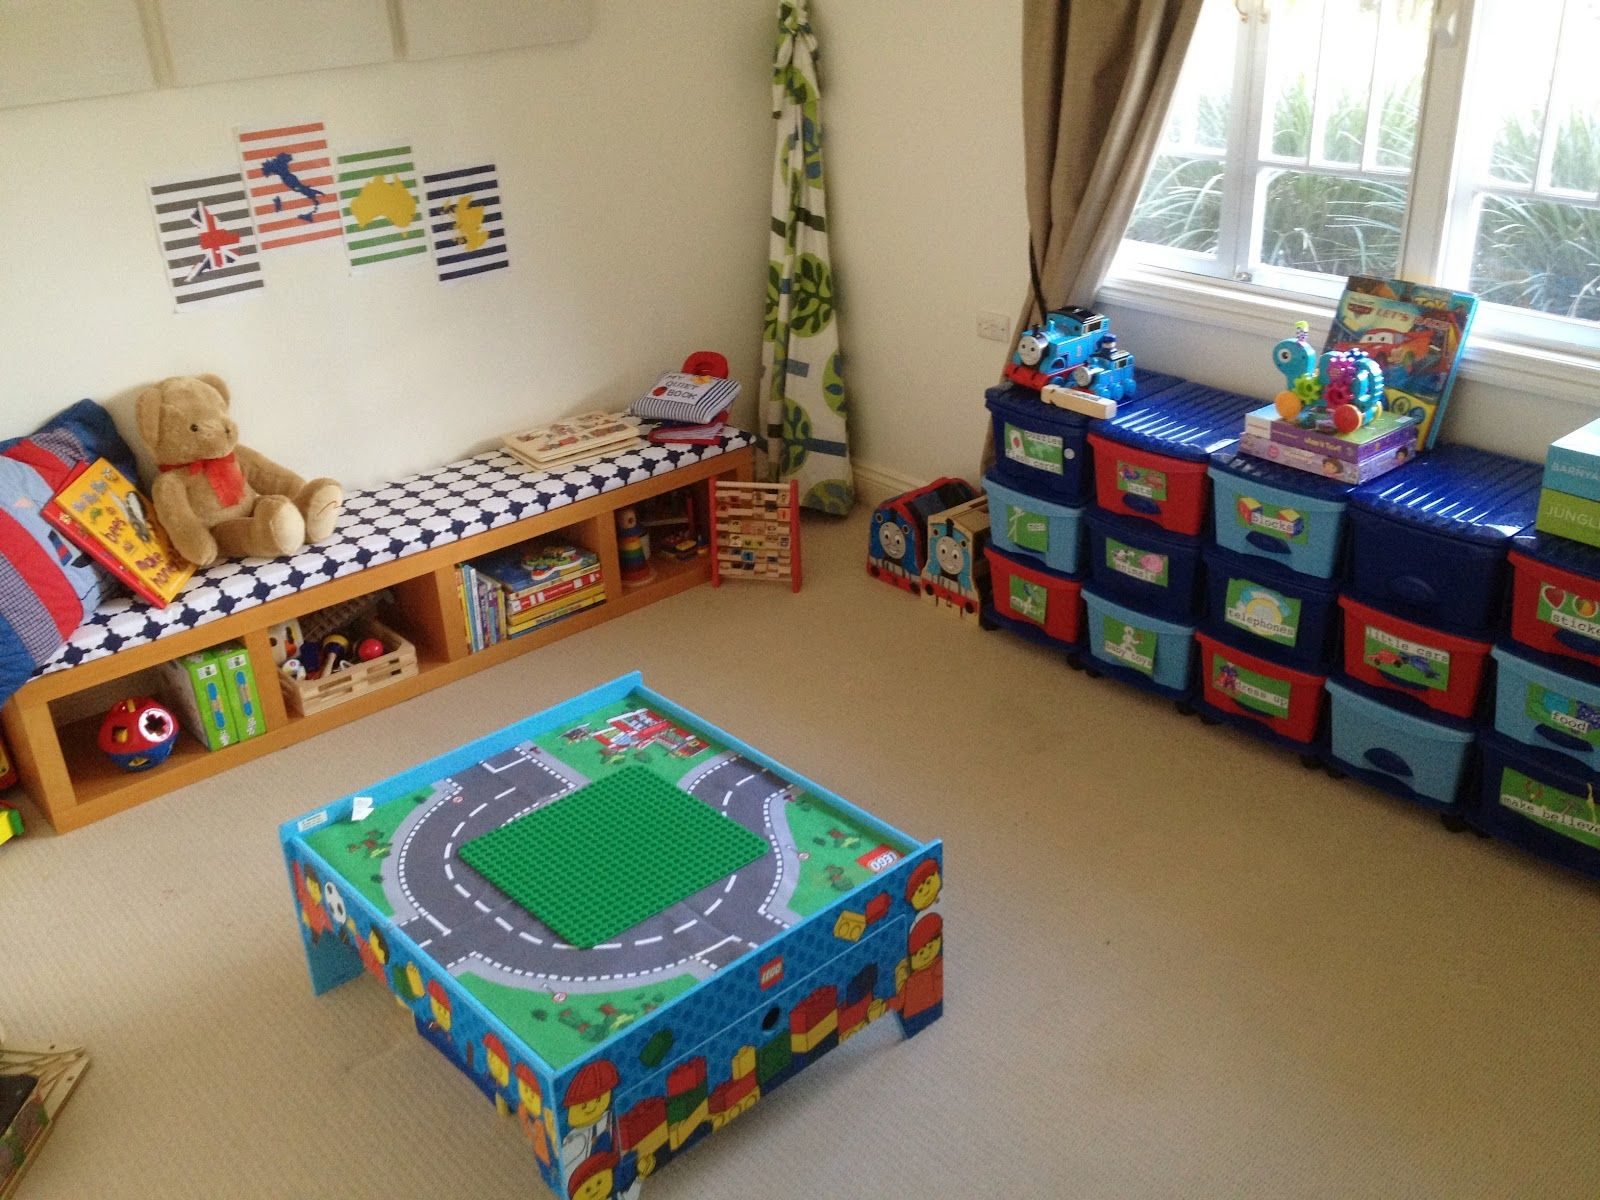 diy playroom storage ideas | this is your beautiful, clean, tidy